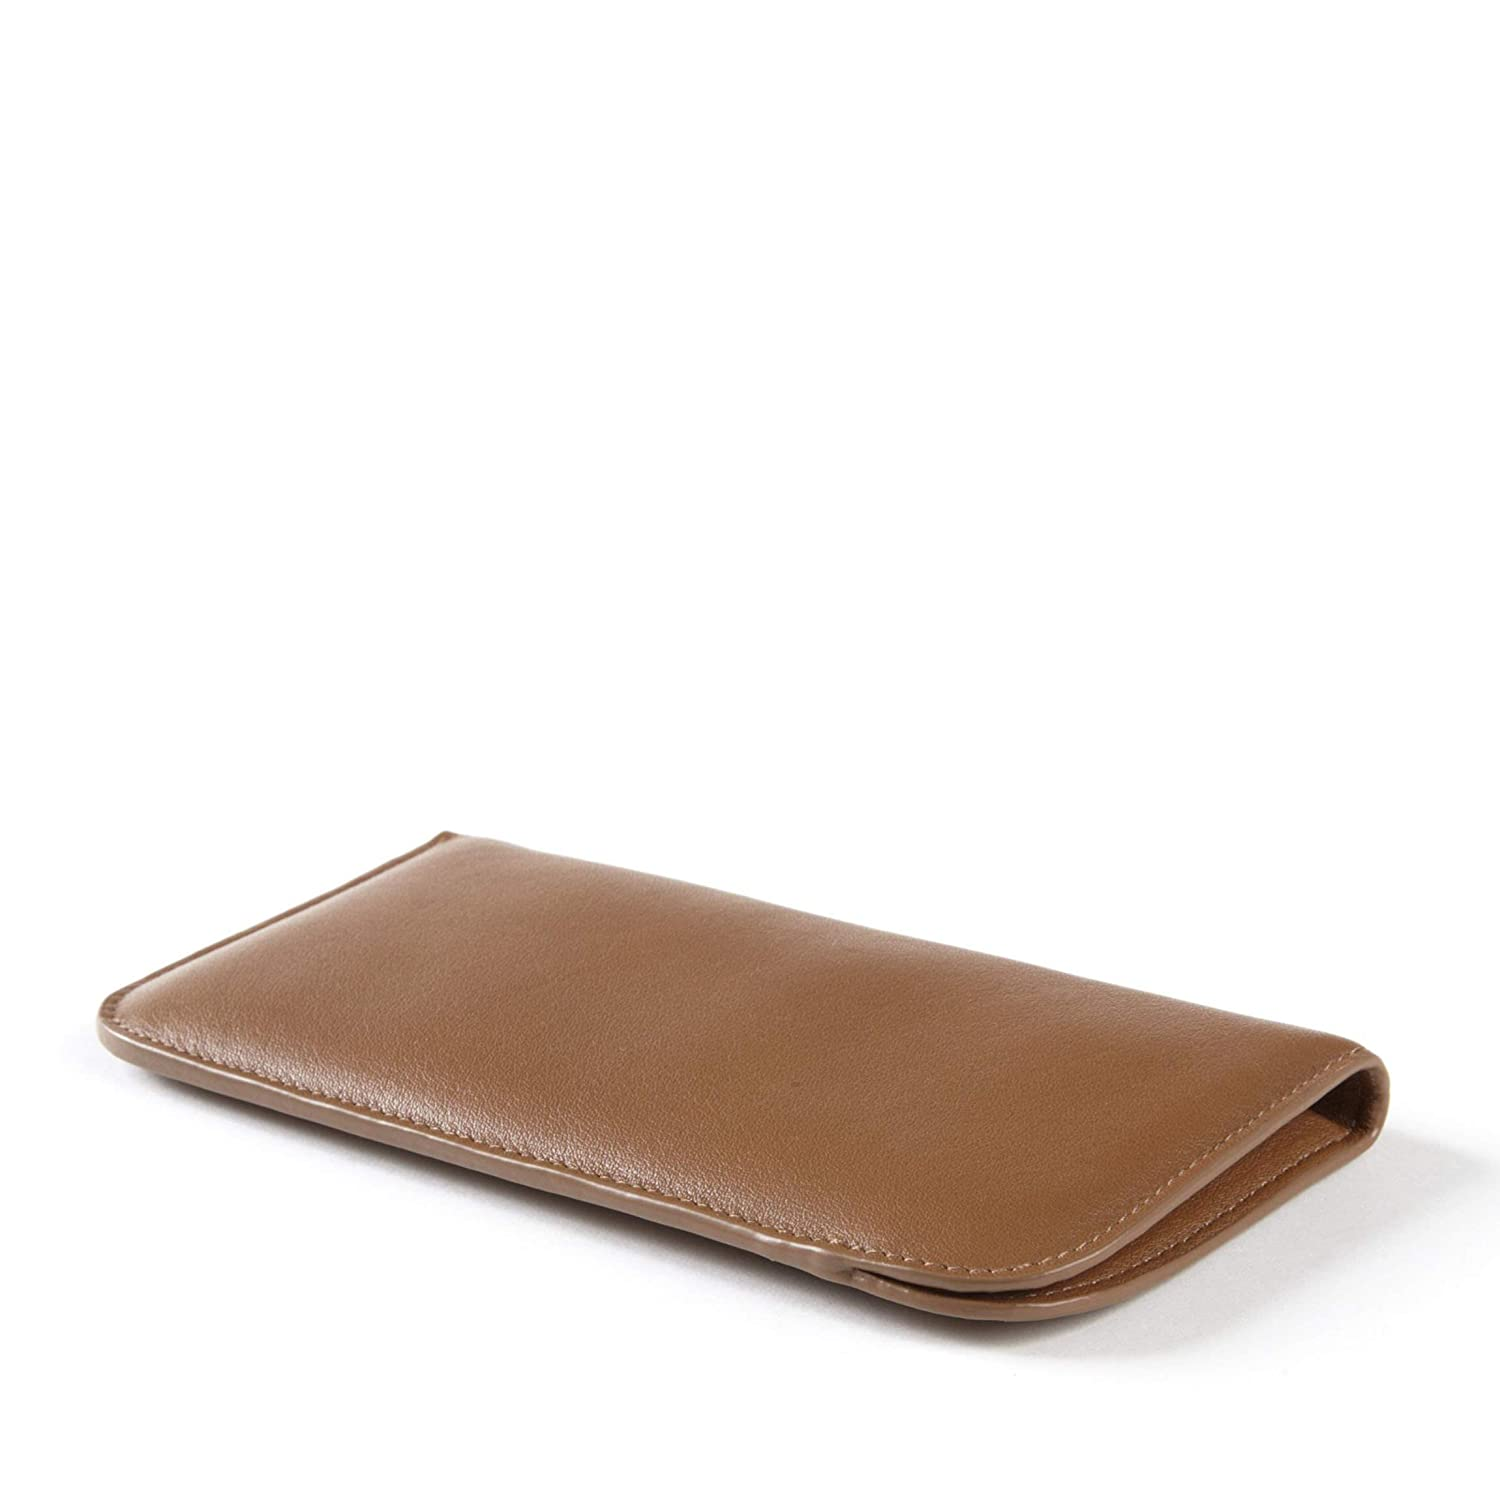 Soft Eyeglass Case Leatherology LWS09165B10229